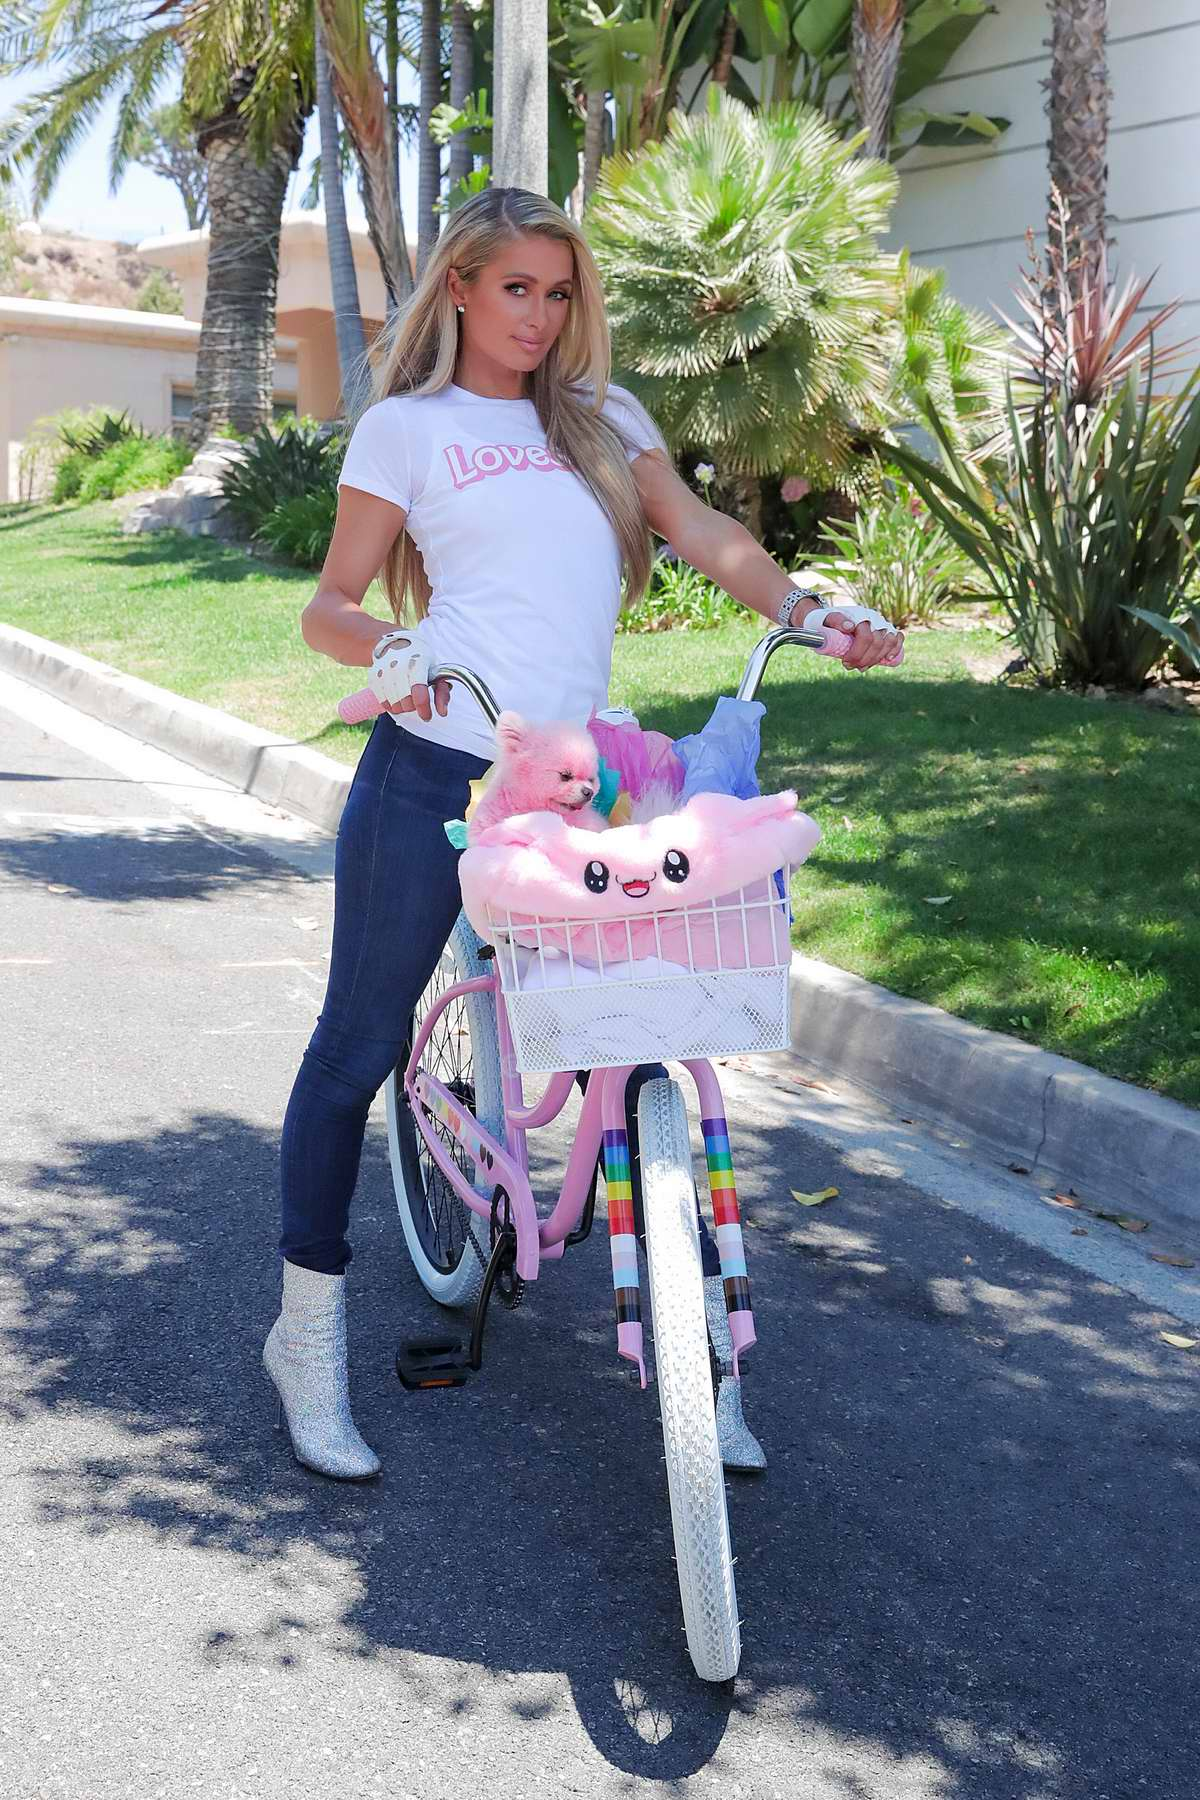 Paris Hilton enjoys a bike ride with her adorable pooch in Beverly Hills, California